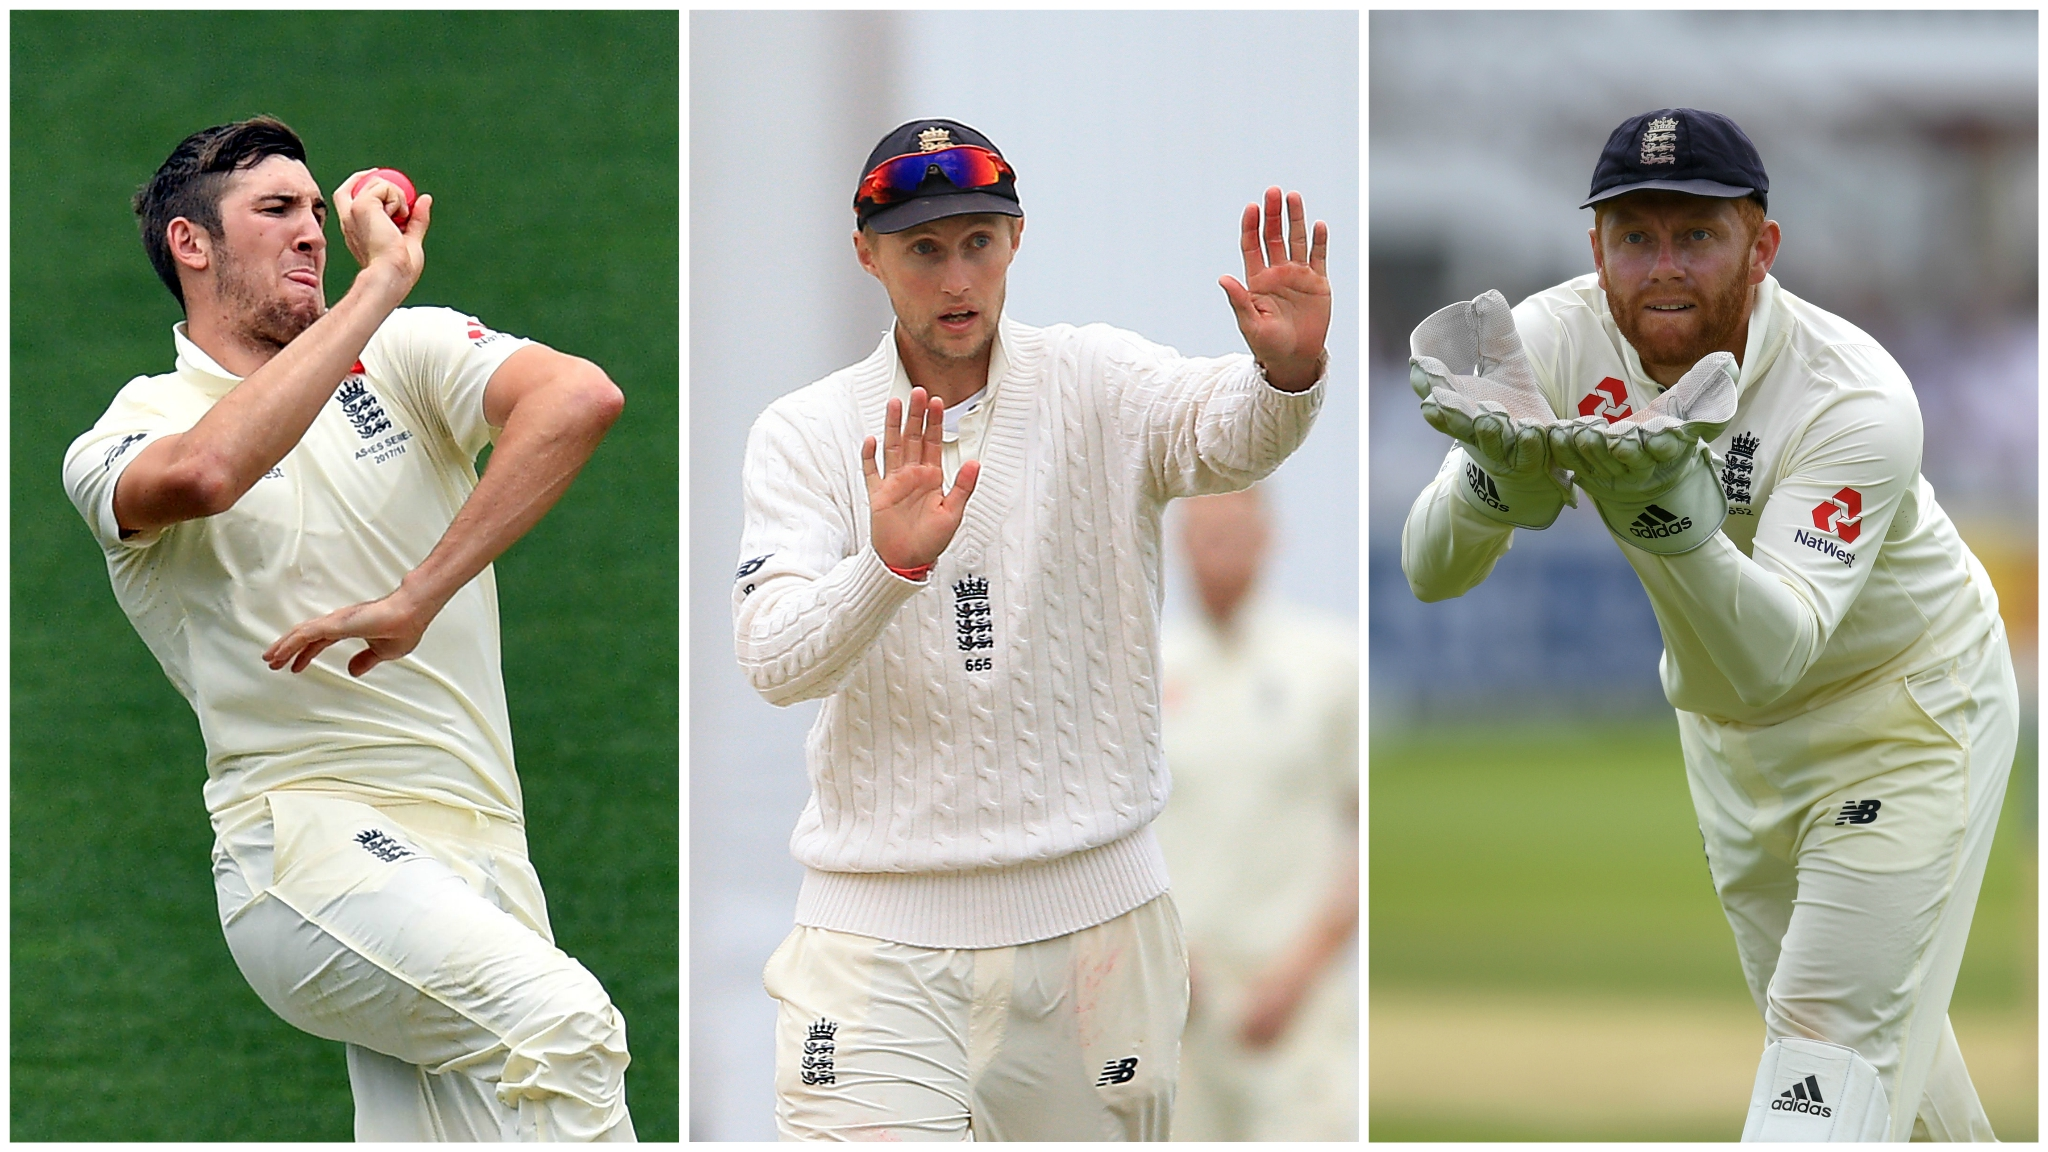 Should Root bat at three? Who did you pick in your England team?